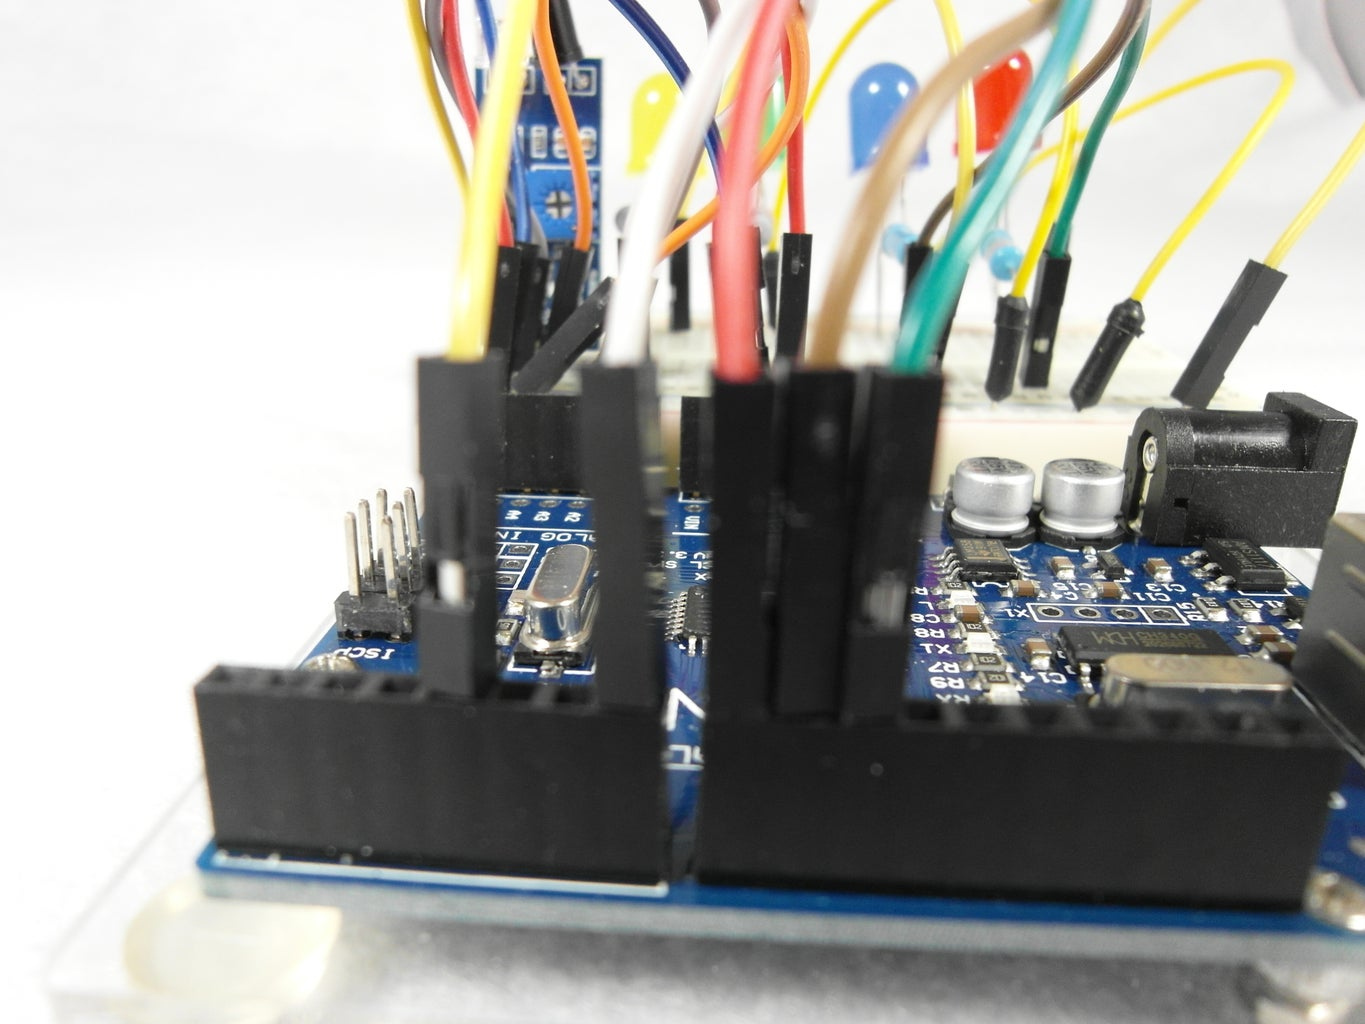 Build the Unit-Combine the IR Obstacle Avoidance Module, LEDs, and Resistors